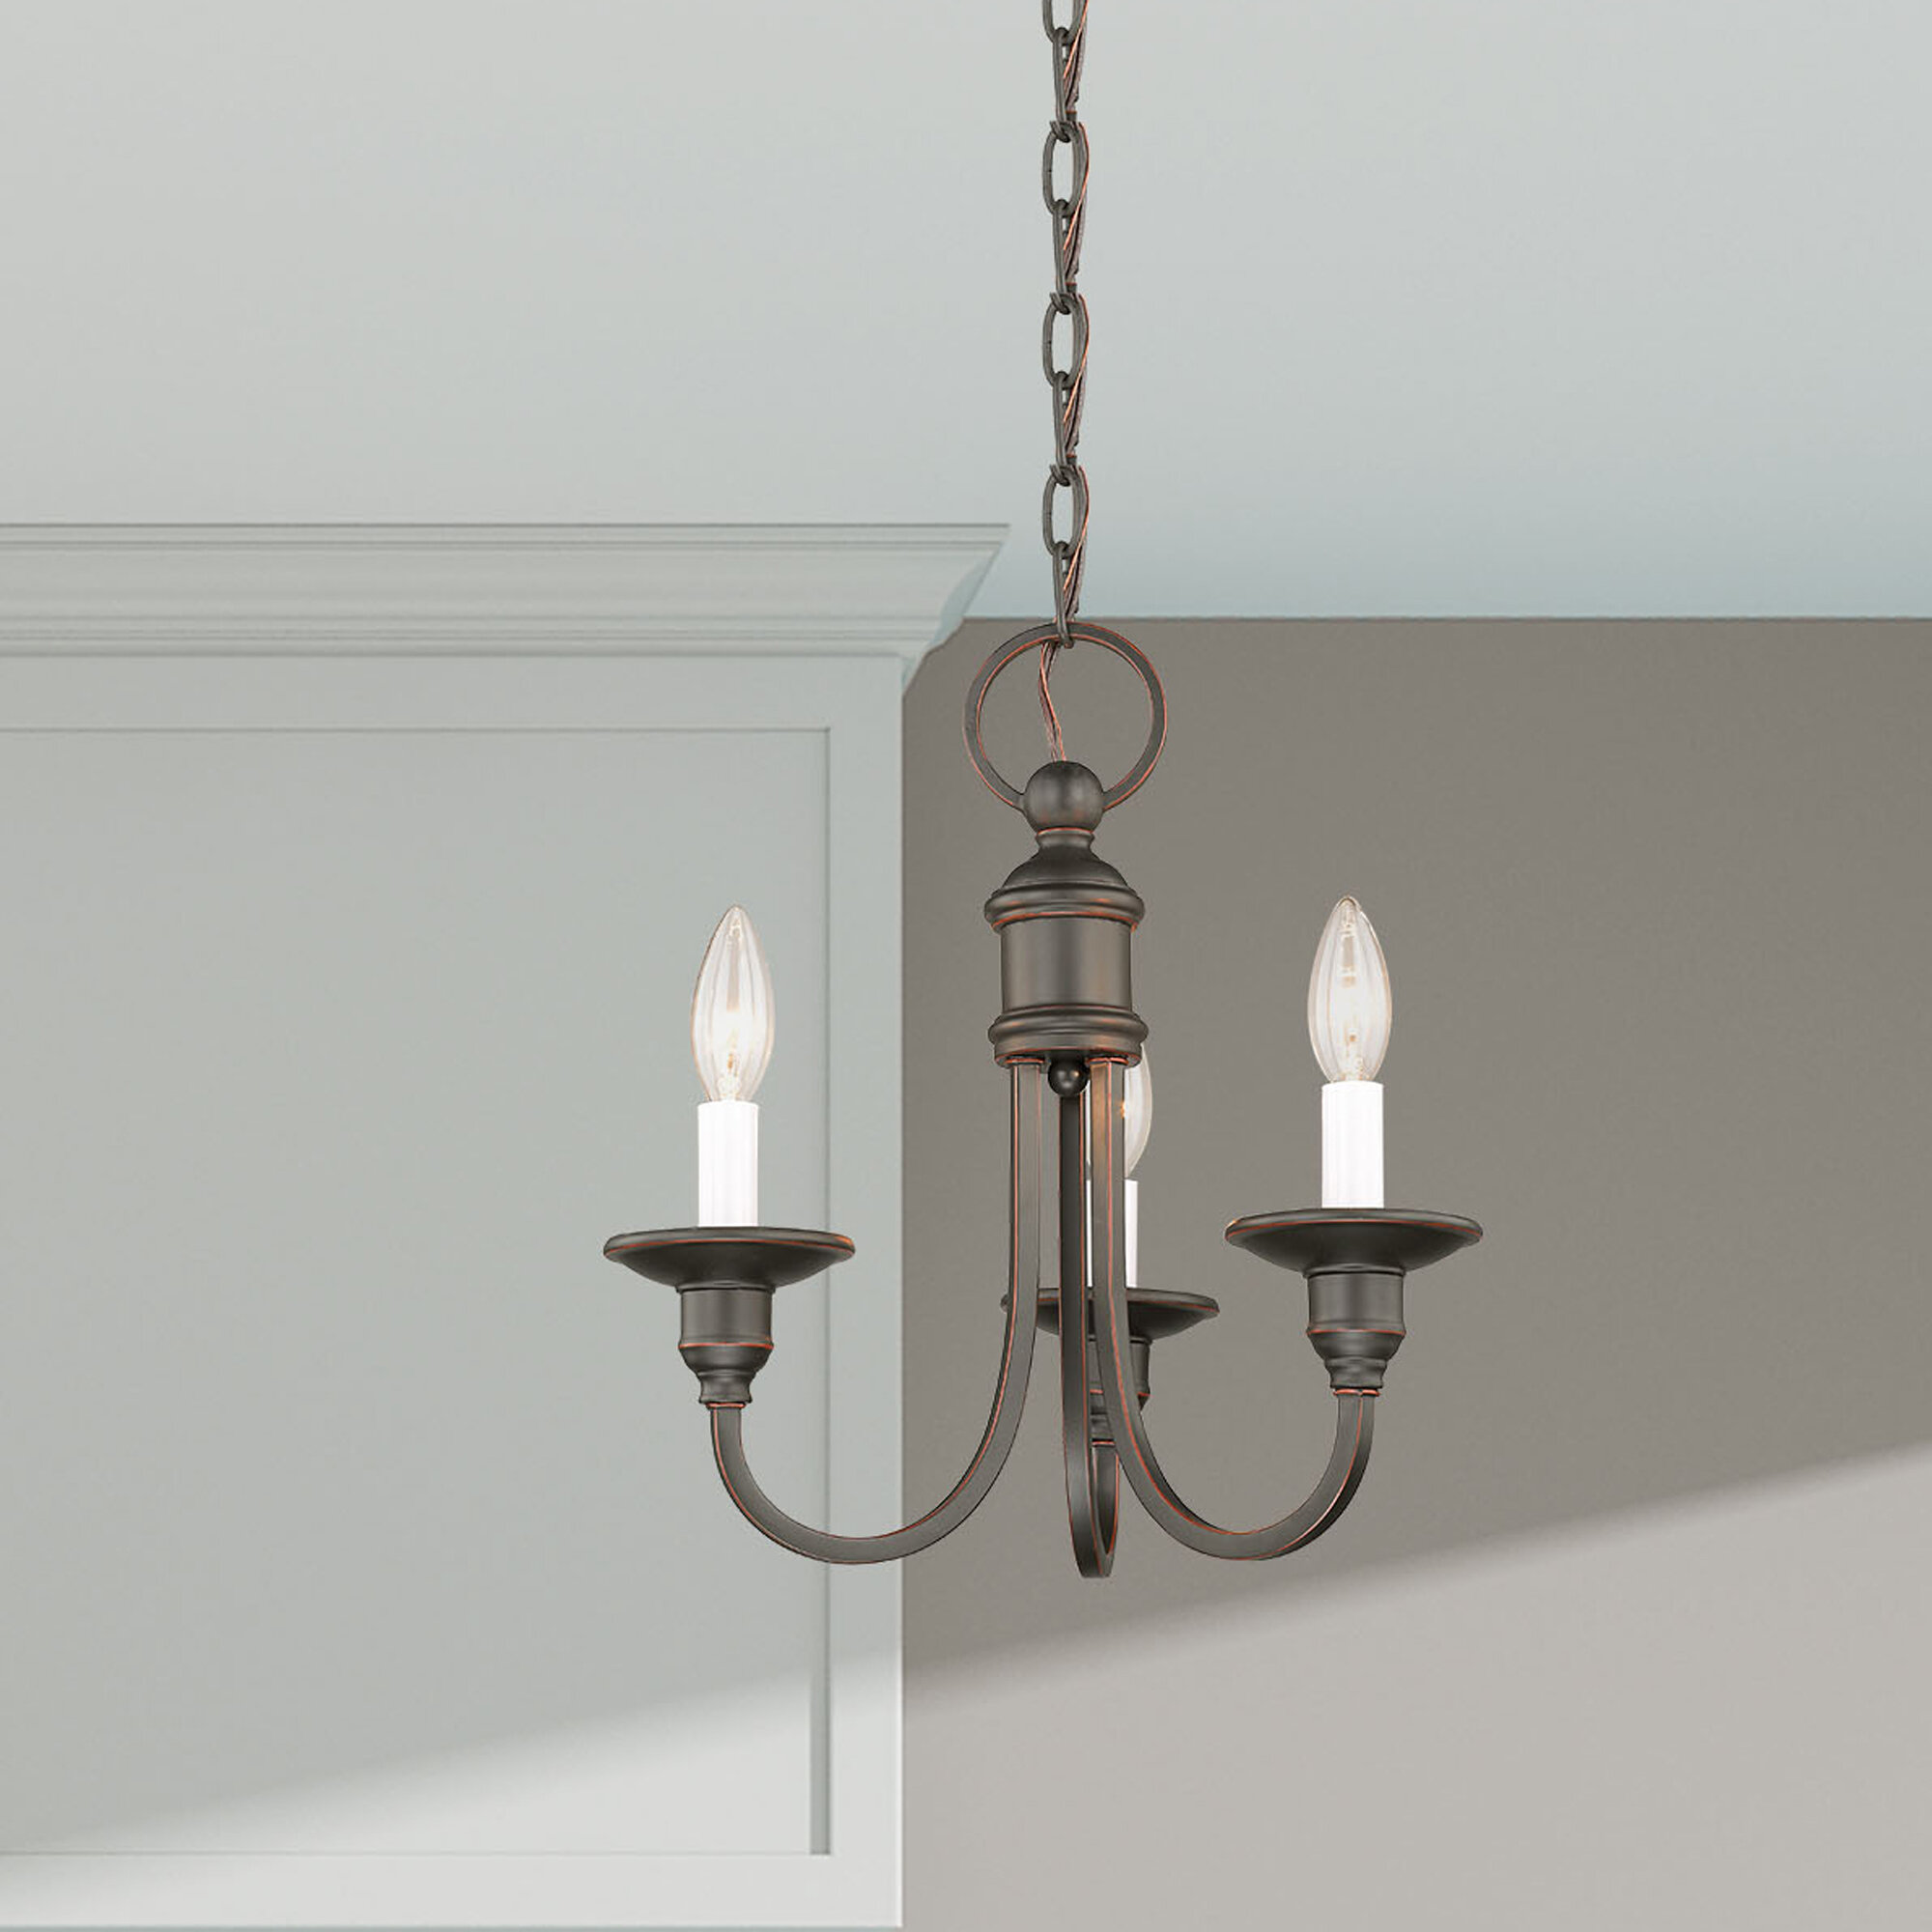 3 Candle Style Chandeliers You Ll Love In 2021 Wayfair